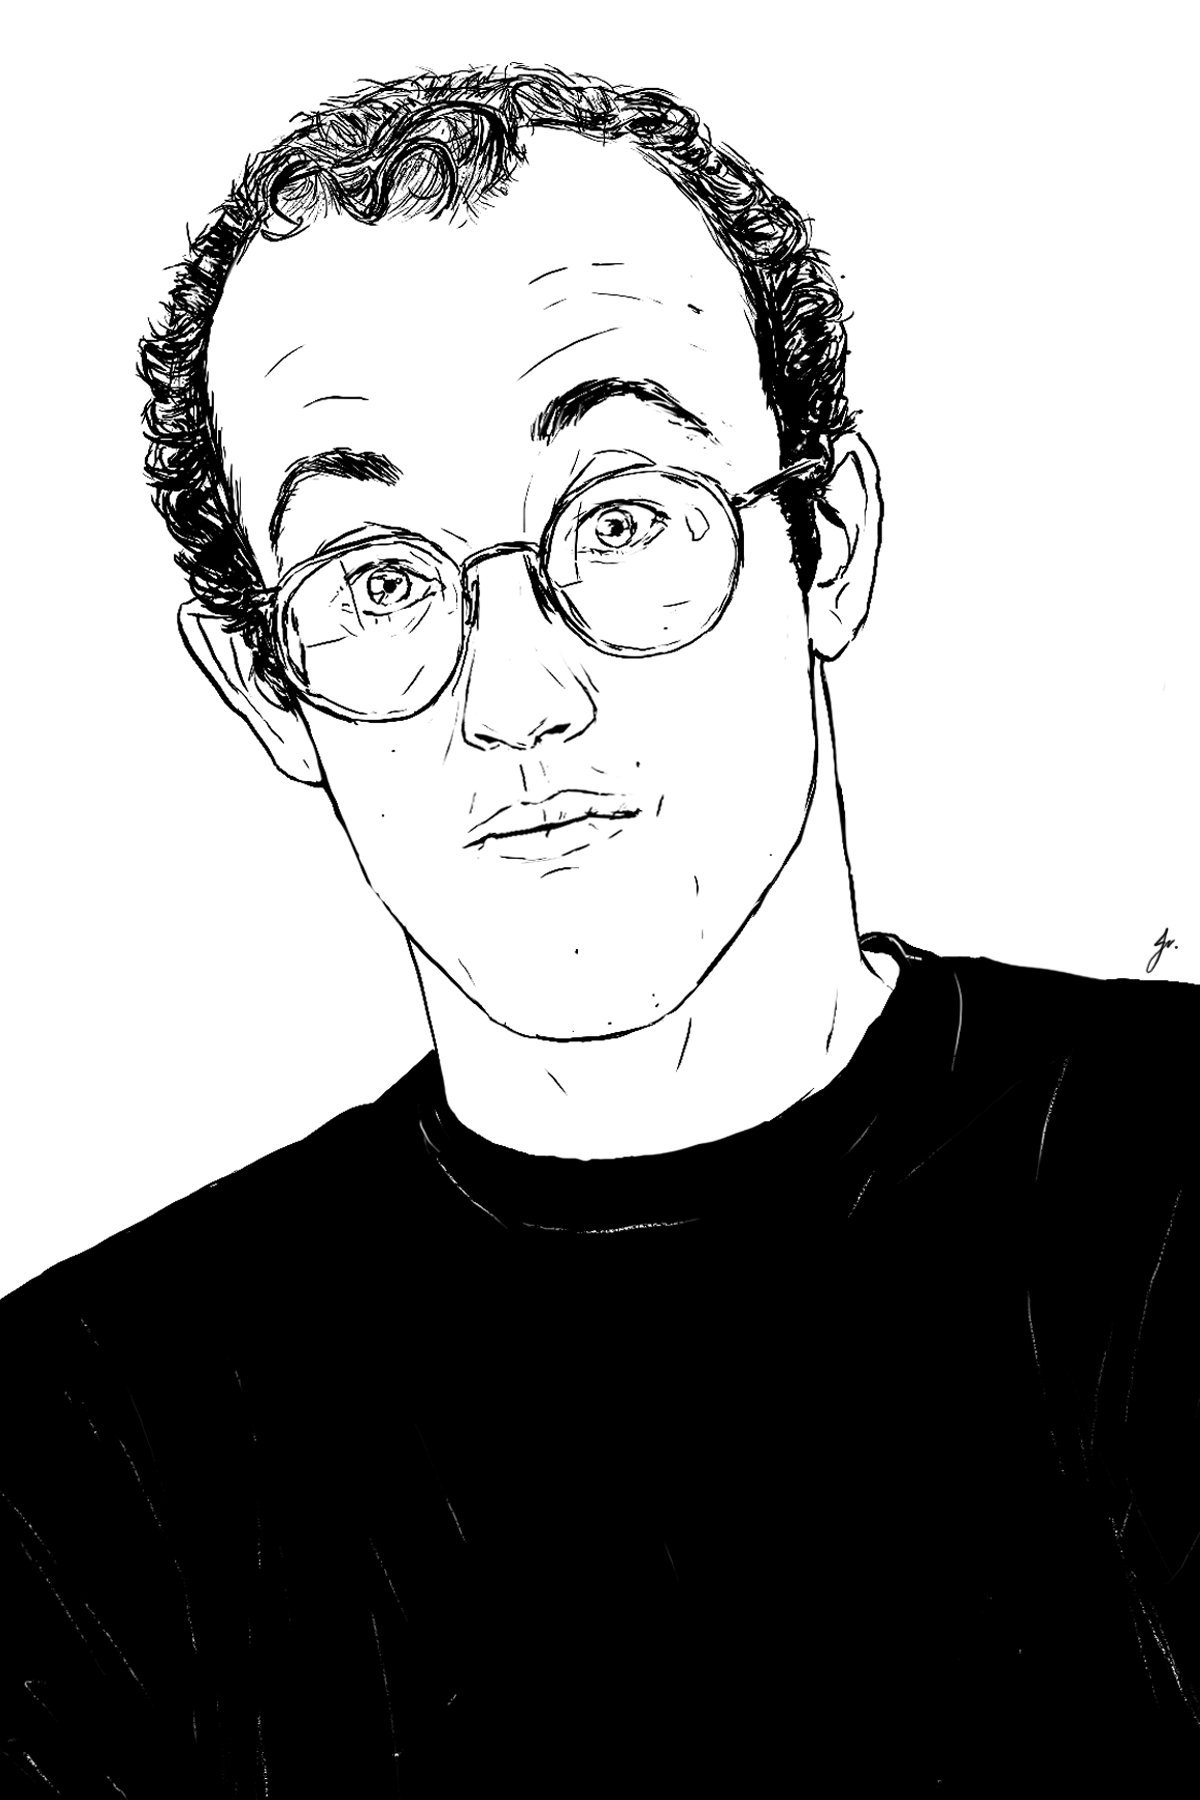 Happy 59th birthday Keith Haring! As is customary here are some of my Keith drawings of the past